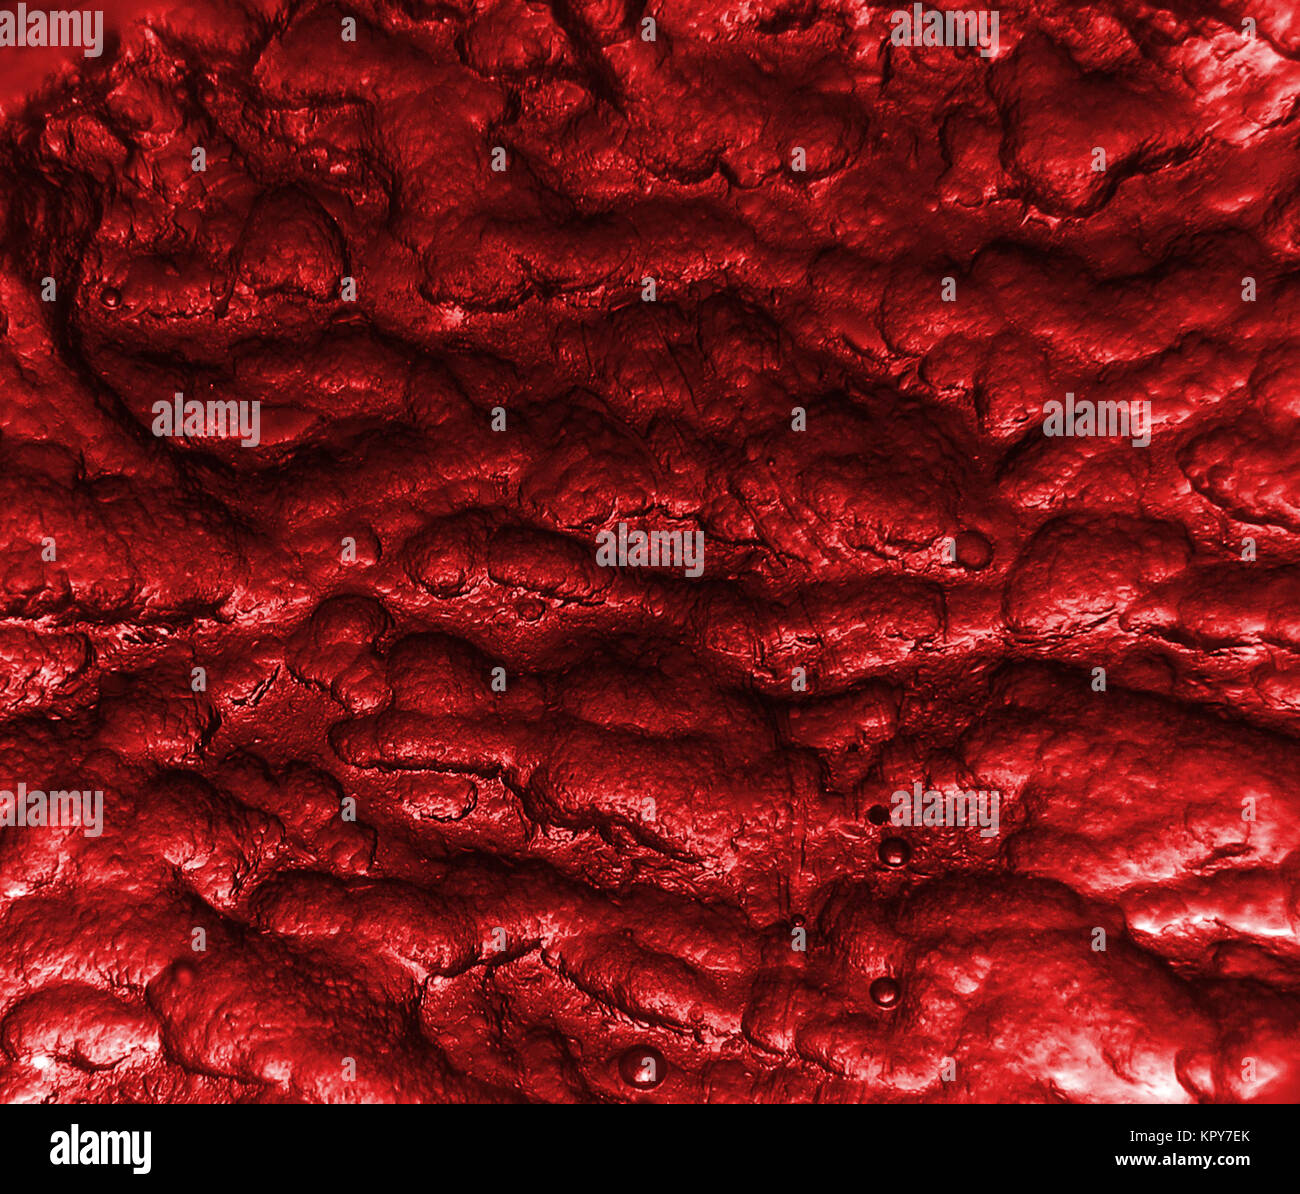 Red Bloody Texture - Stock Image